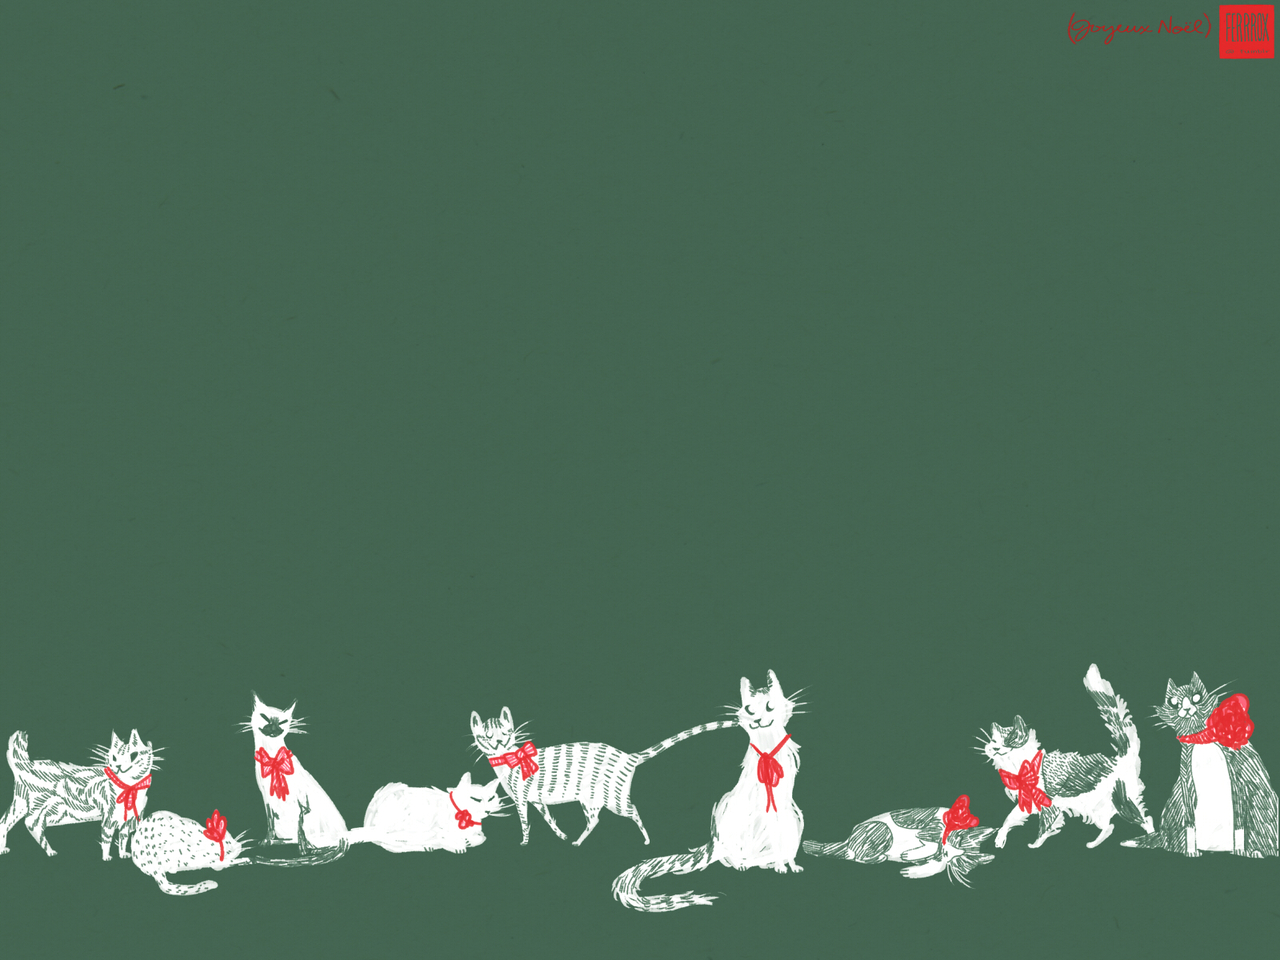 Free Download Kitten Trash Ferrrox Christmas Cat Wallpaper 1600x1200 Px 1280x960 For Your Desktop Mobile Tablet Explore 48 Christmas Wallpaper Tumblr Cute Wallpapers Tumblr Tumblr Wallpapers For Computers Tumblr Wallpaper Iphone